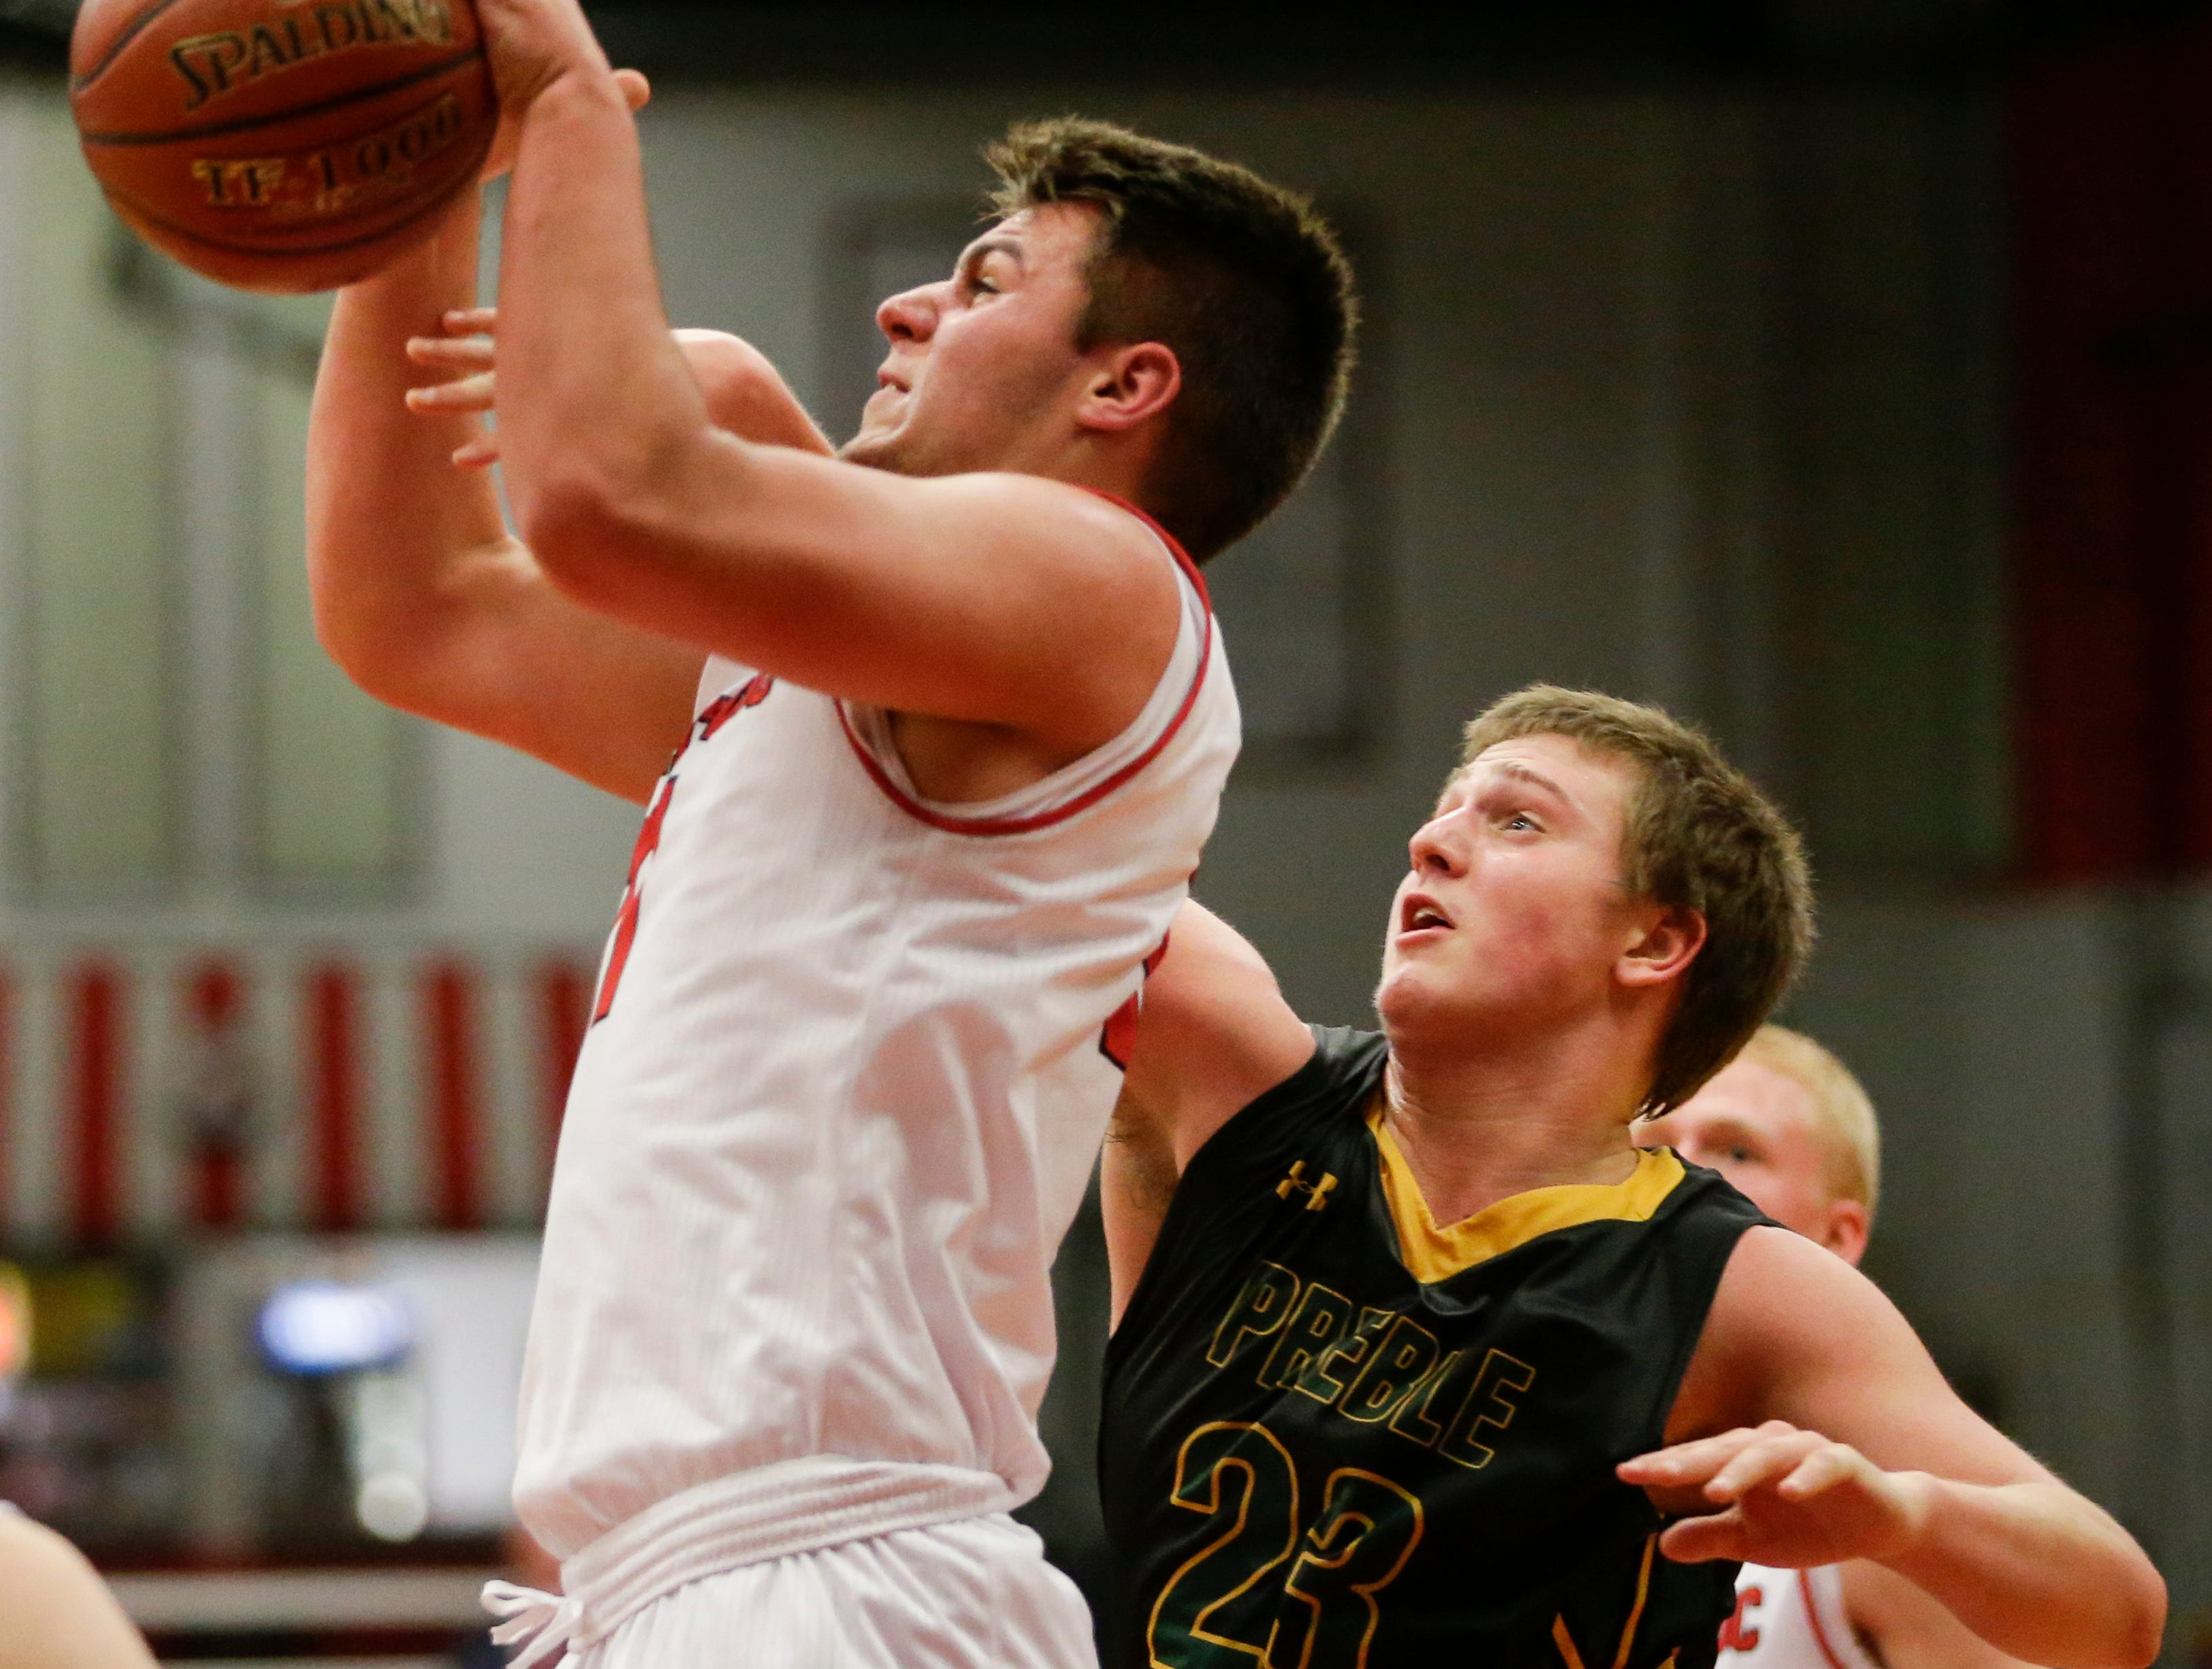 Manitowoc Lincoln's Davis Heinzen (11) gets a shot blocked from behind by Green Bay Preble's Bryan Boockmeier (23) during boys FRCC basketball at Manitowoc Lincoln High School Friday, December 21, 2018, in Manitowoc, Wis. Joshua Clark/USA TODAY NETWORK-Wisconsin